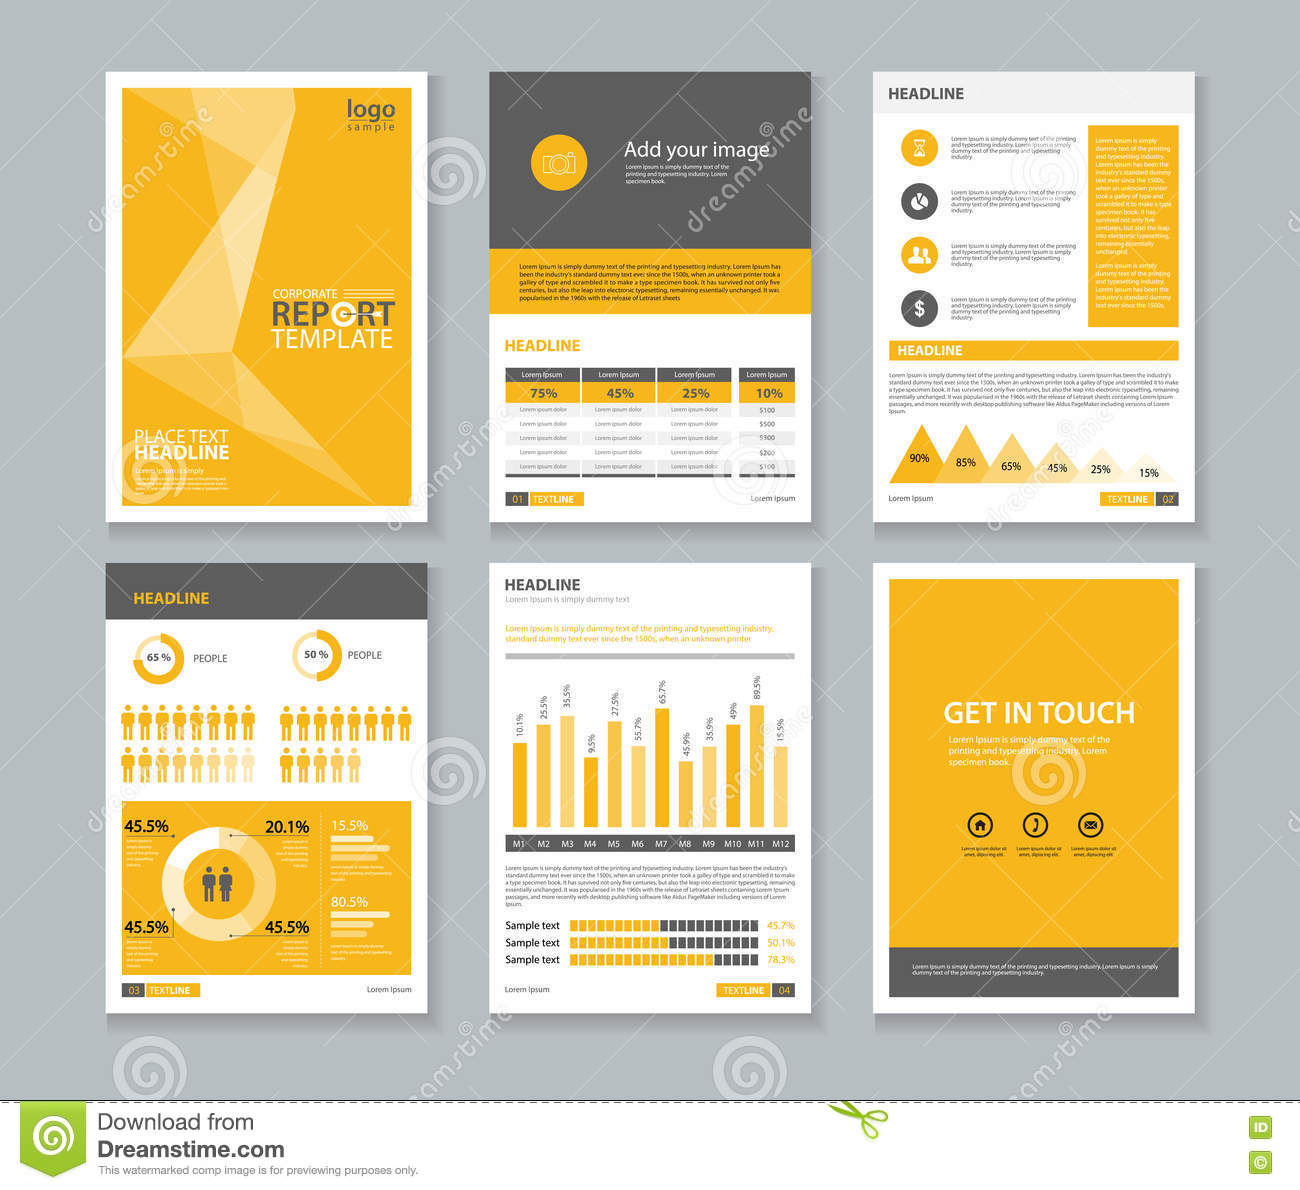 Template Company Profile Annual Report Brochure Flyerlayout - 1 page brochure template